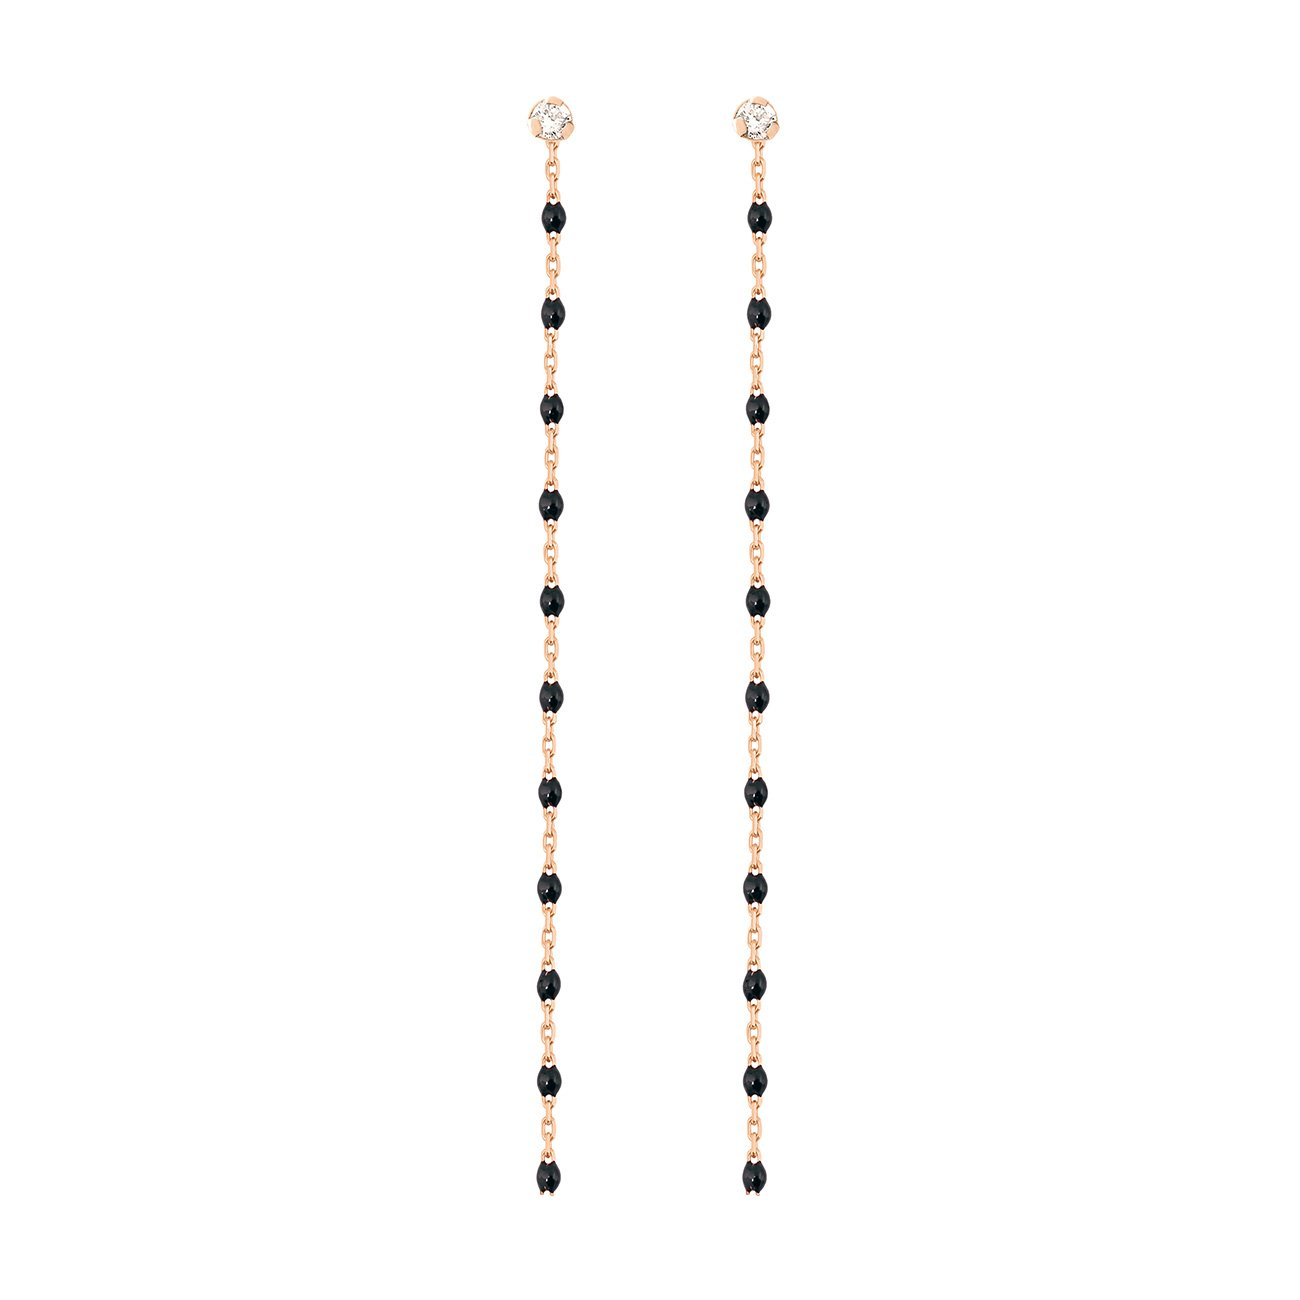 Gigi Clozeau - Boucles d'oreilles noire Gigi Party, diamants, or rose